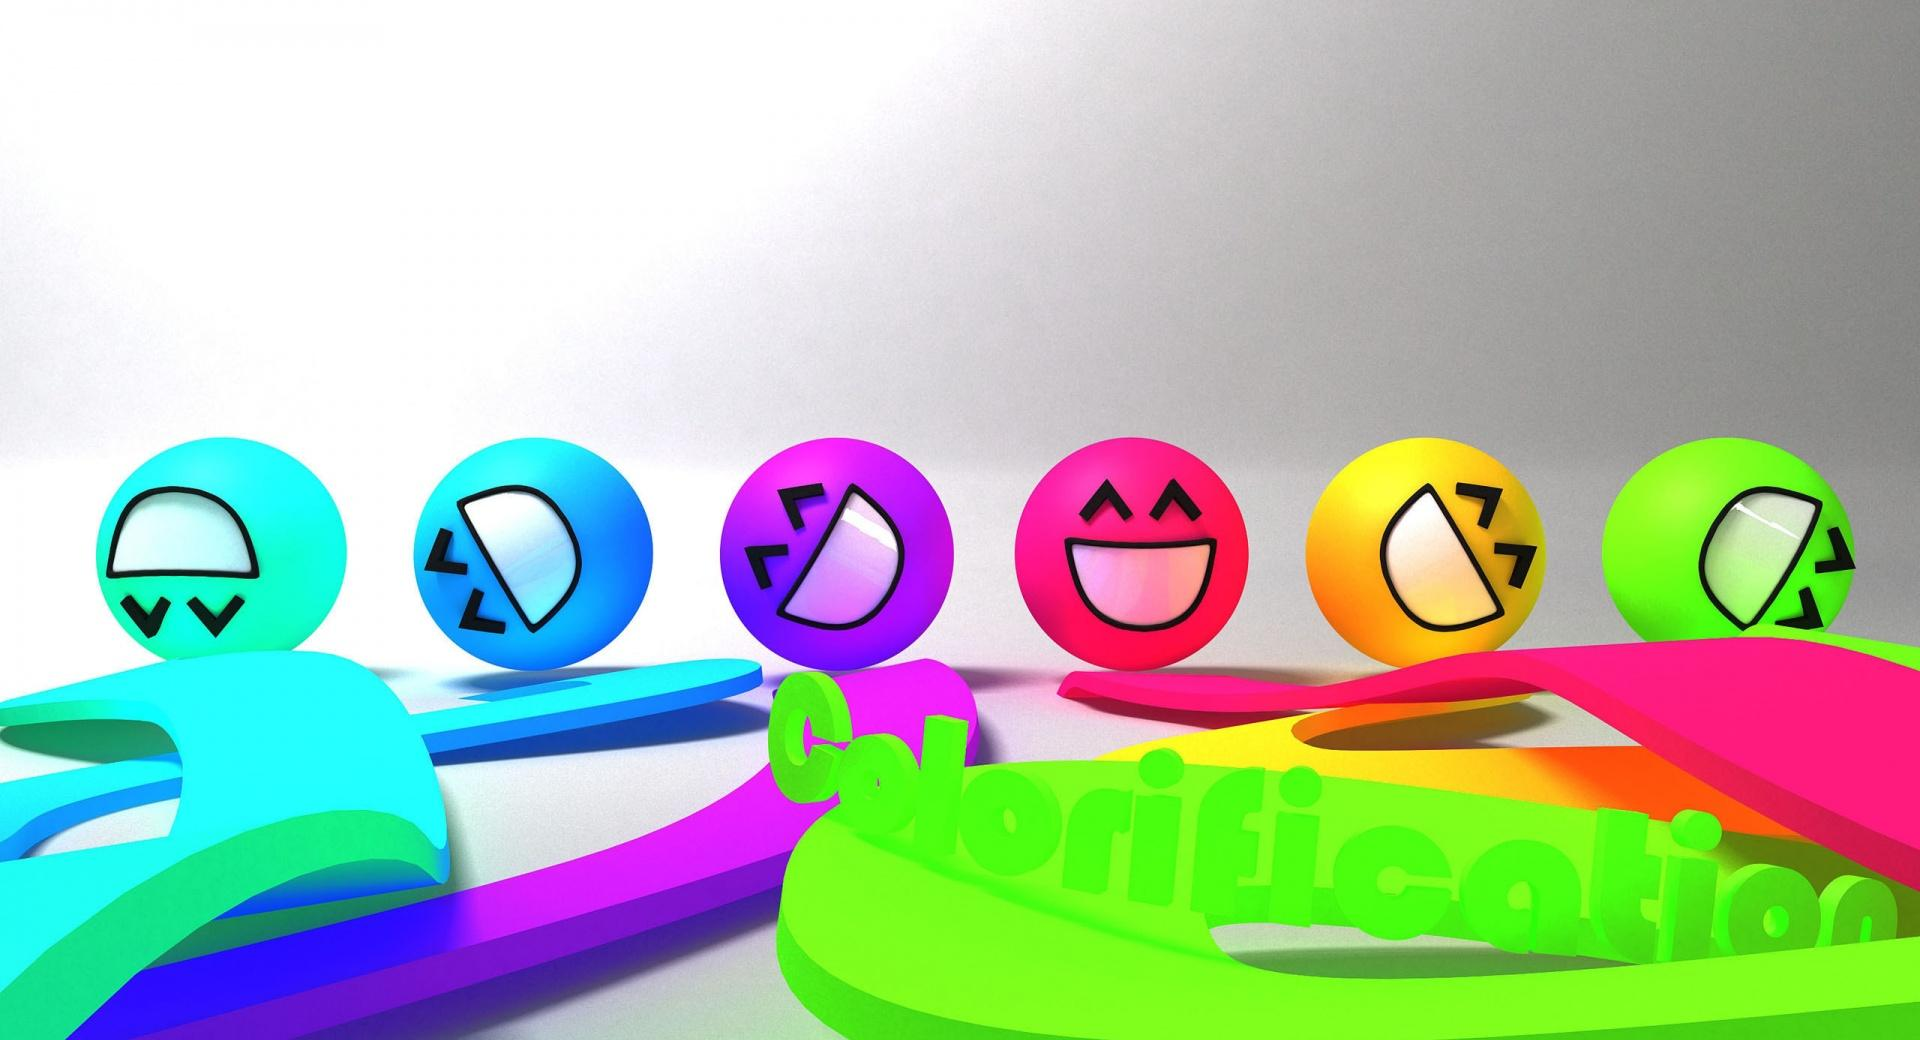 Colorful Smiley Faces wallpapers HD quality